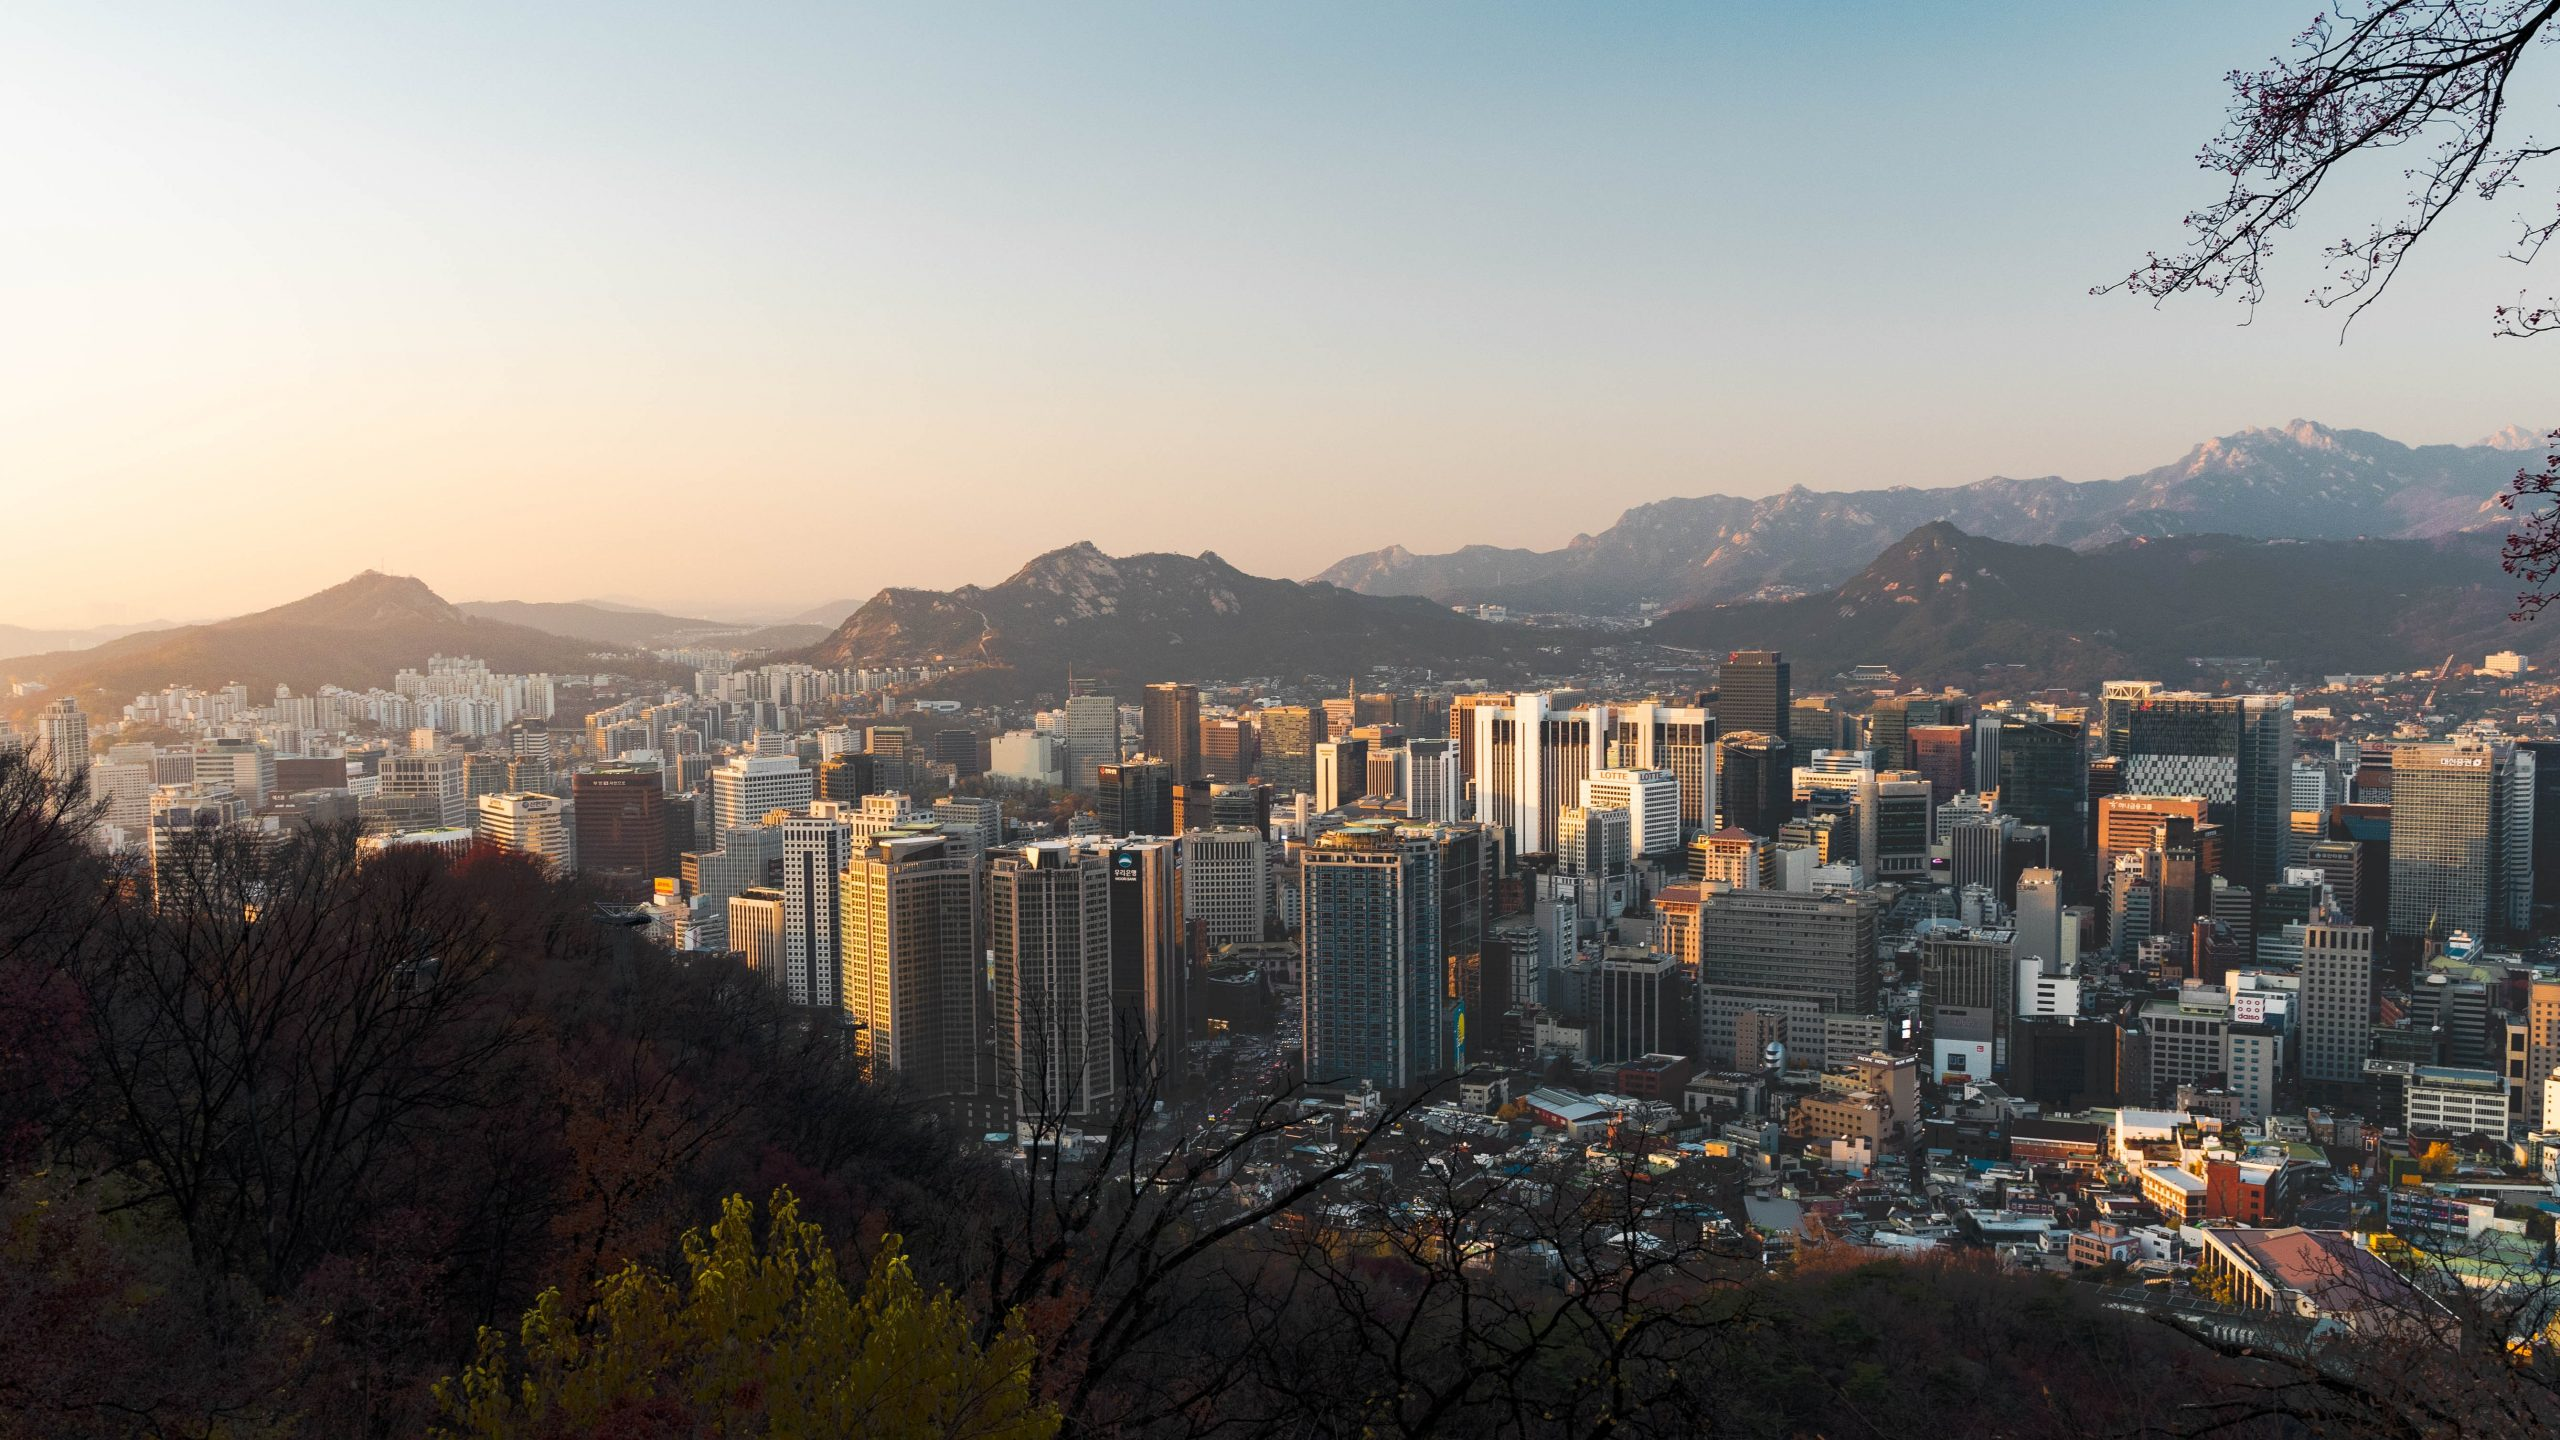 Skyline of Seoul in South Korea